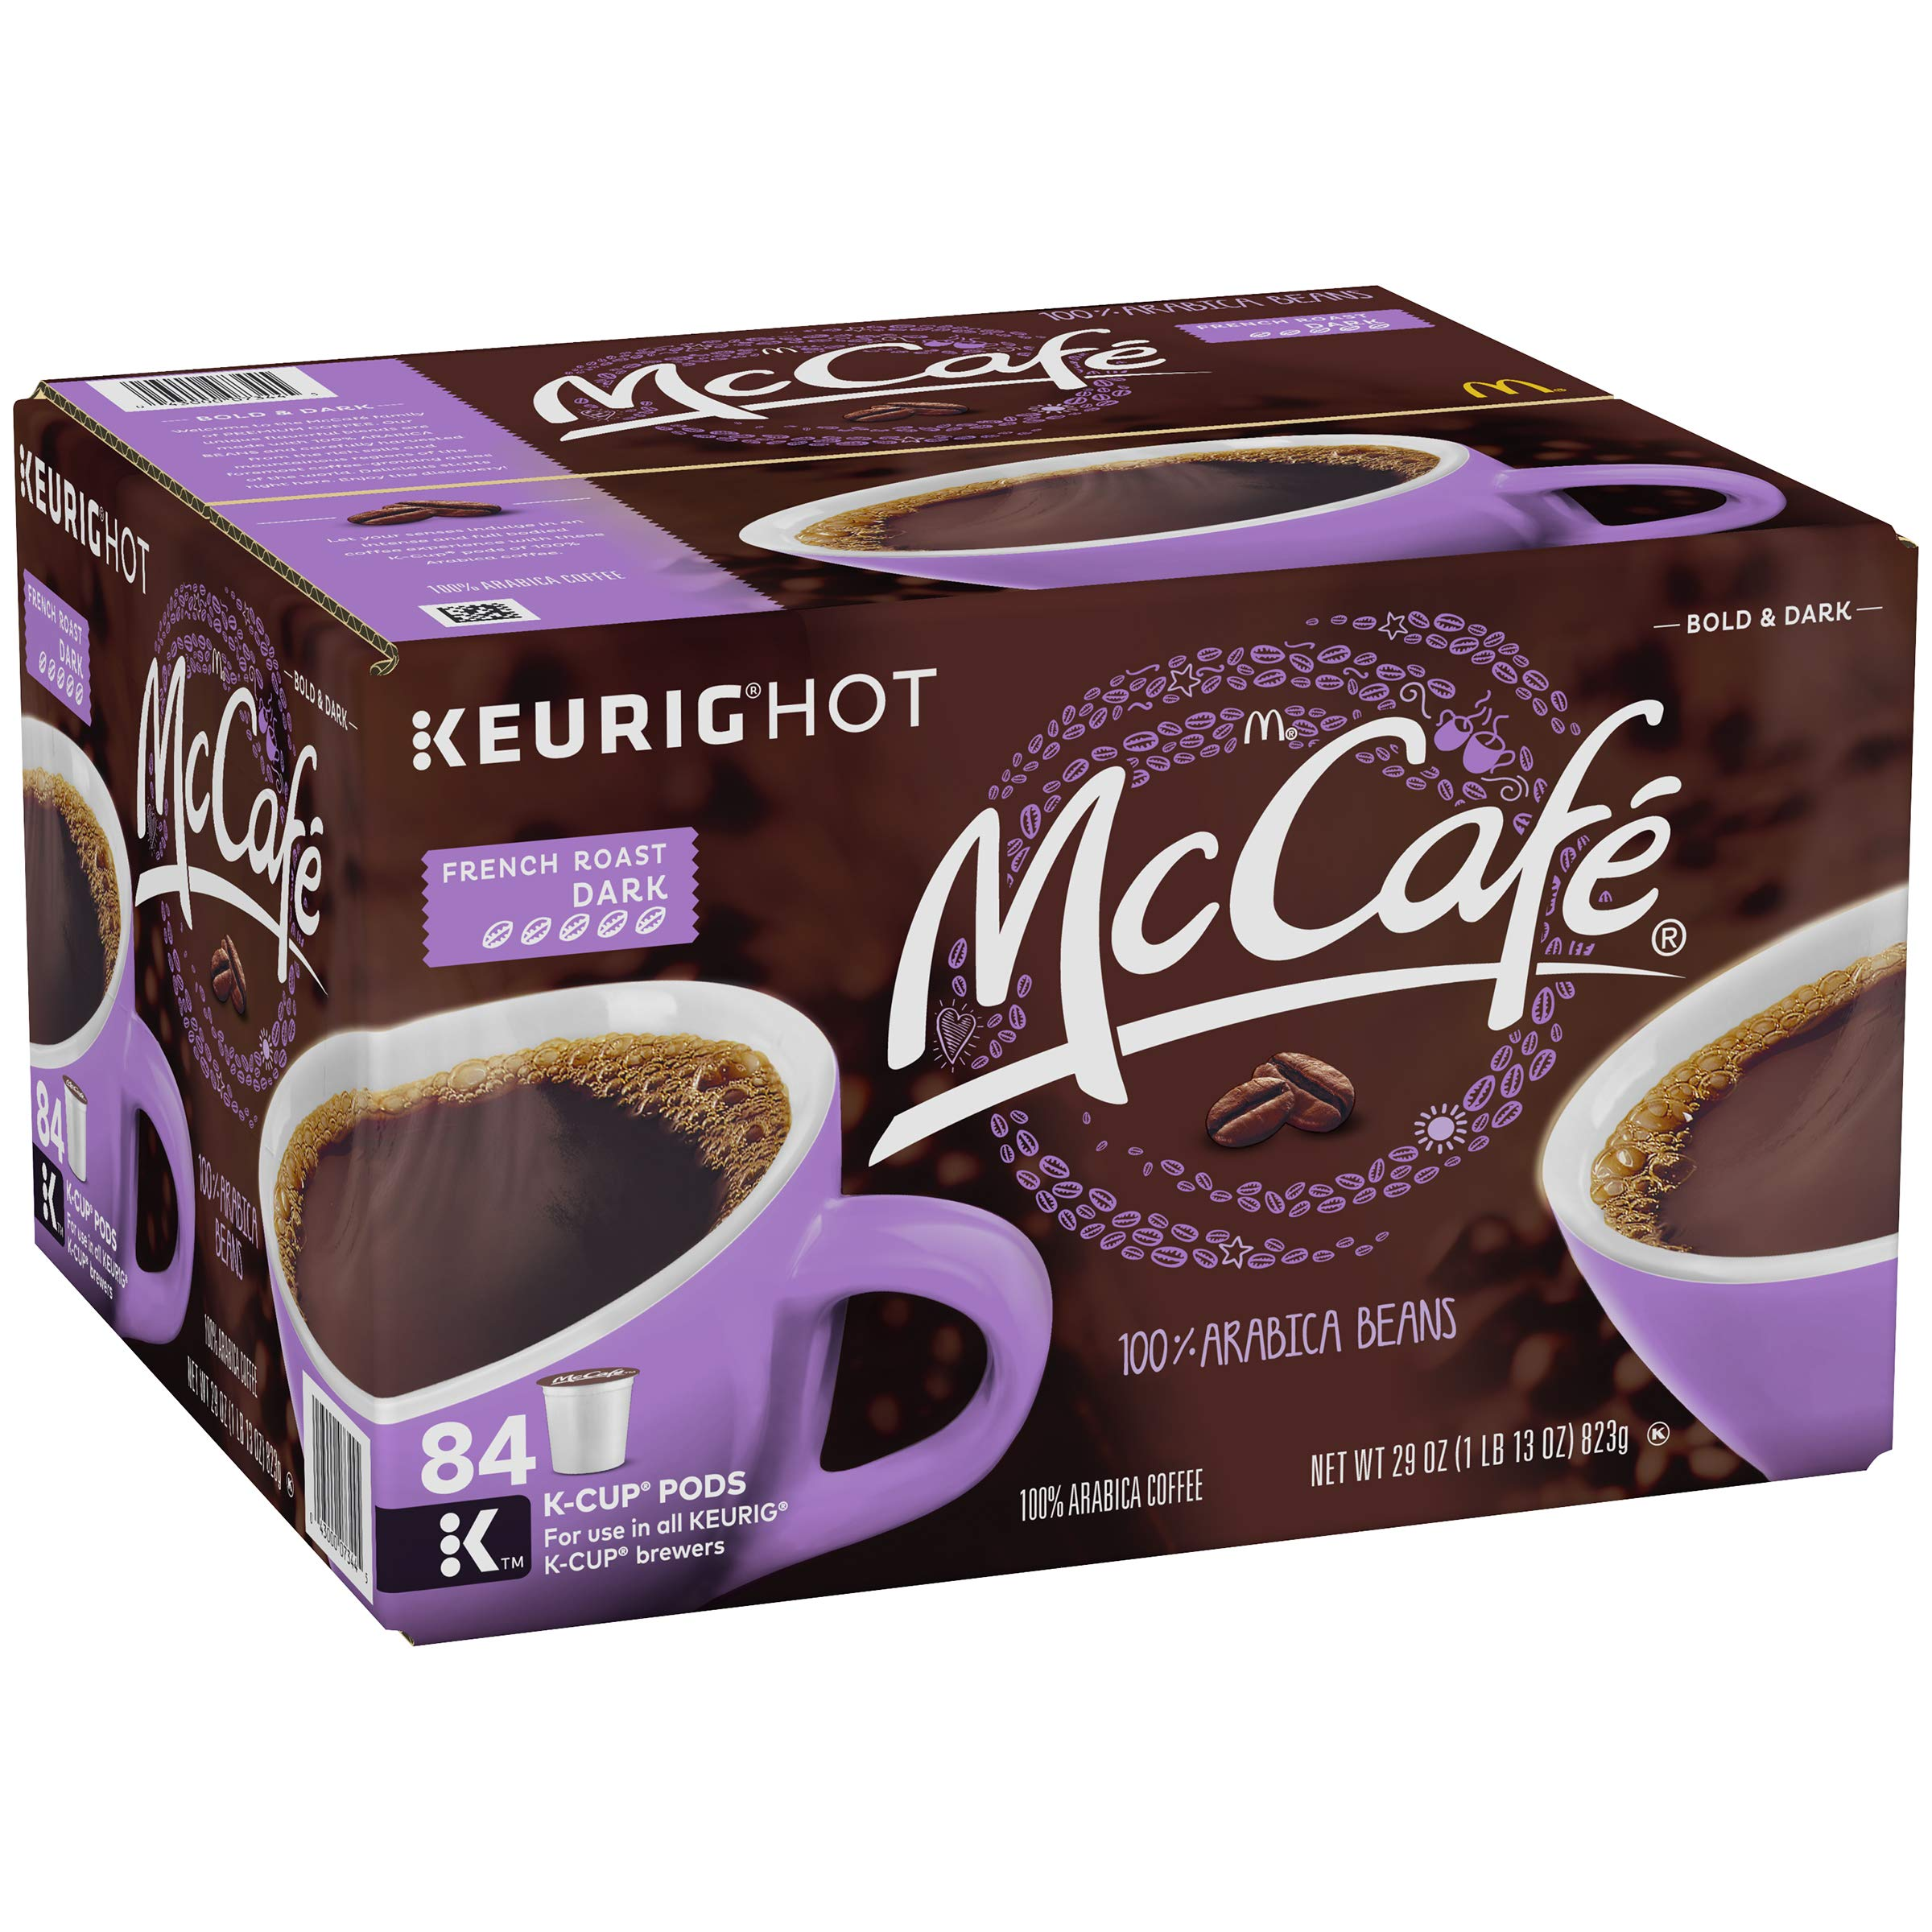 McCafe French Roast Dark K-Cup Coffee Pods, 84 Count by McCafe